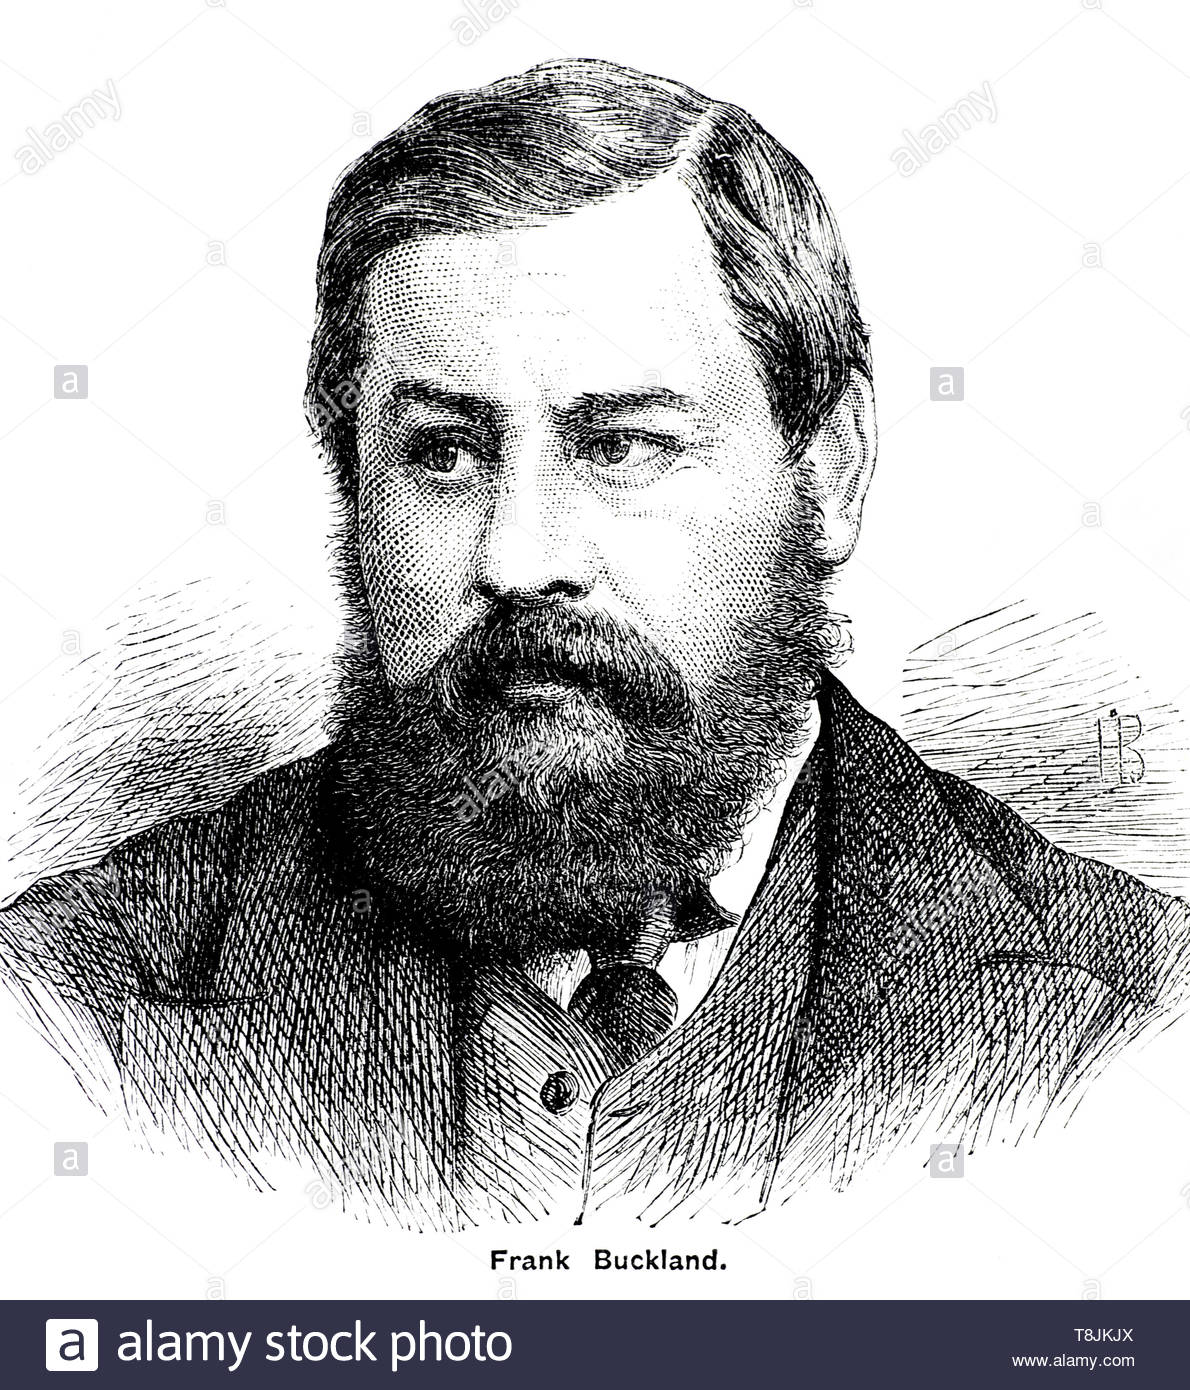 Frank Buckland portrait, 1826 – 1880, was an English surgeon, zoologist, and natural historian, illustration from 1884 - Stock Image